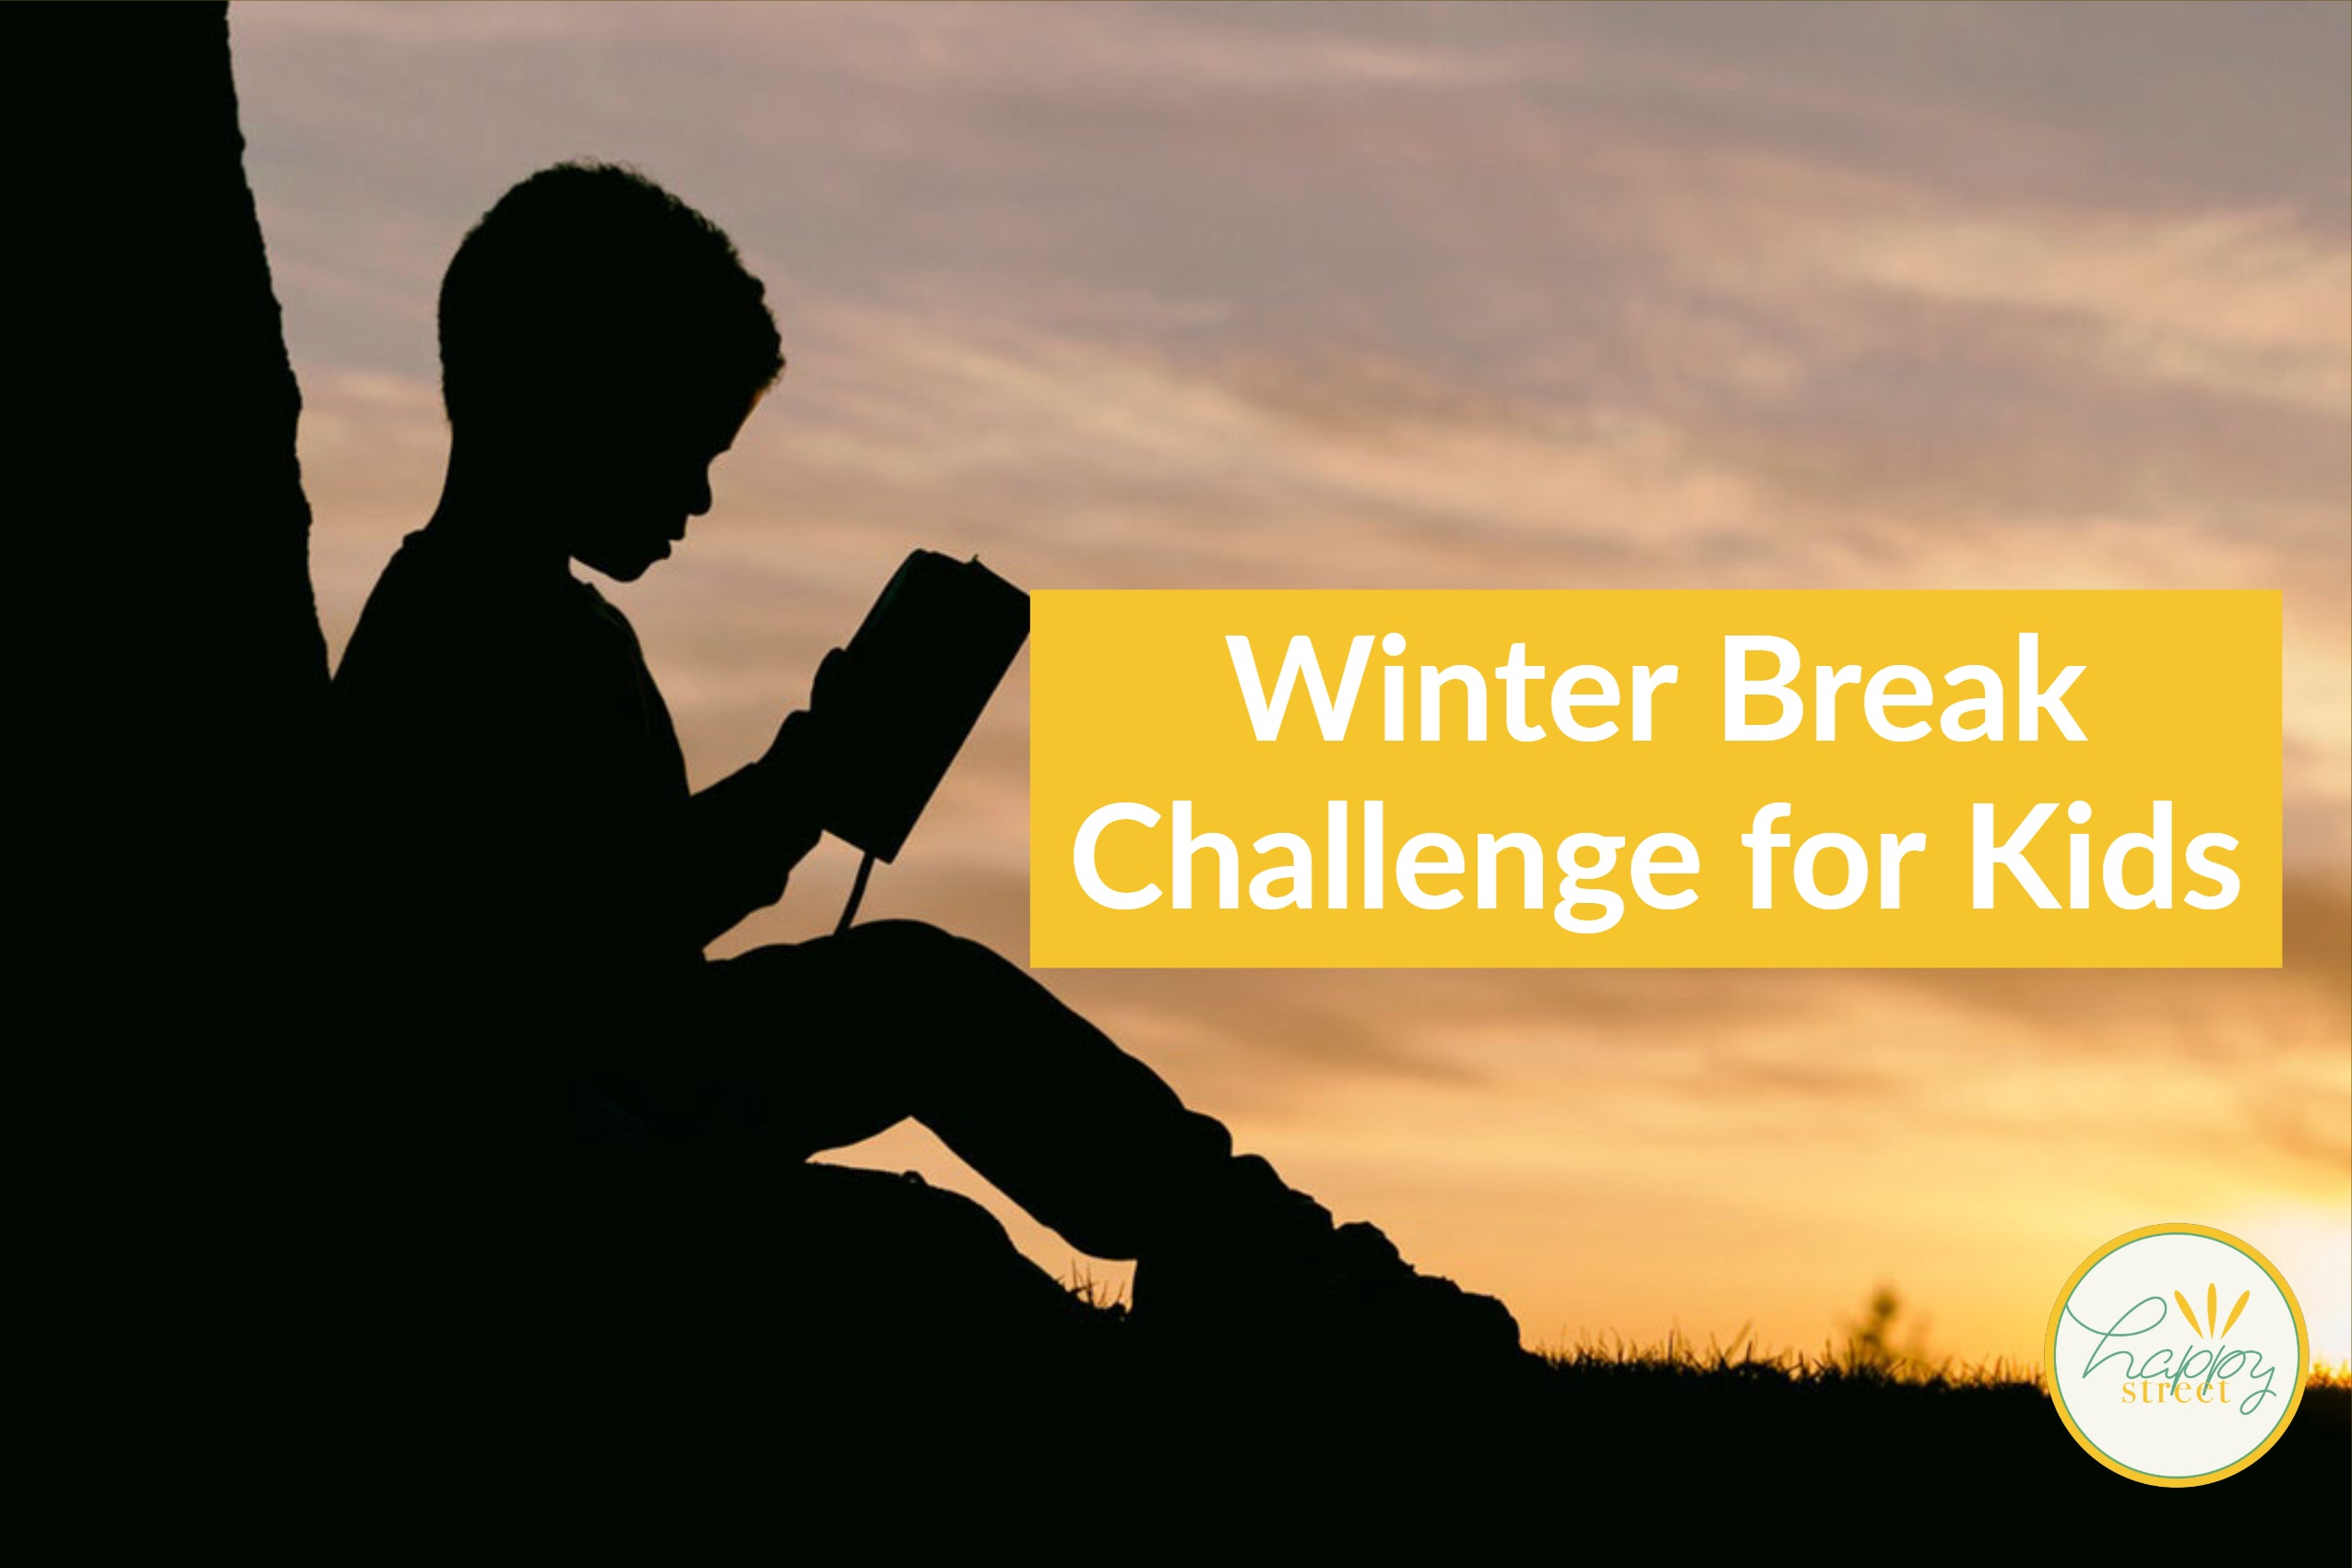 Winter Break Challenge for Kids